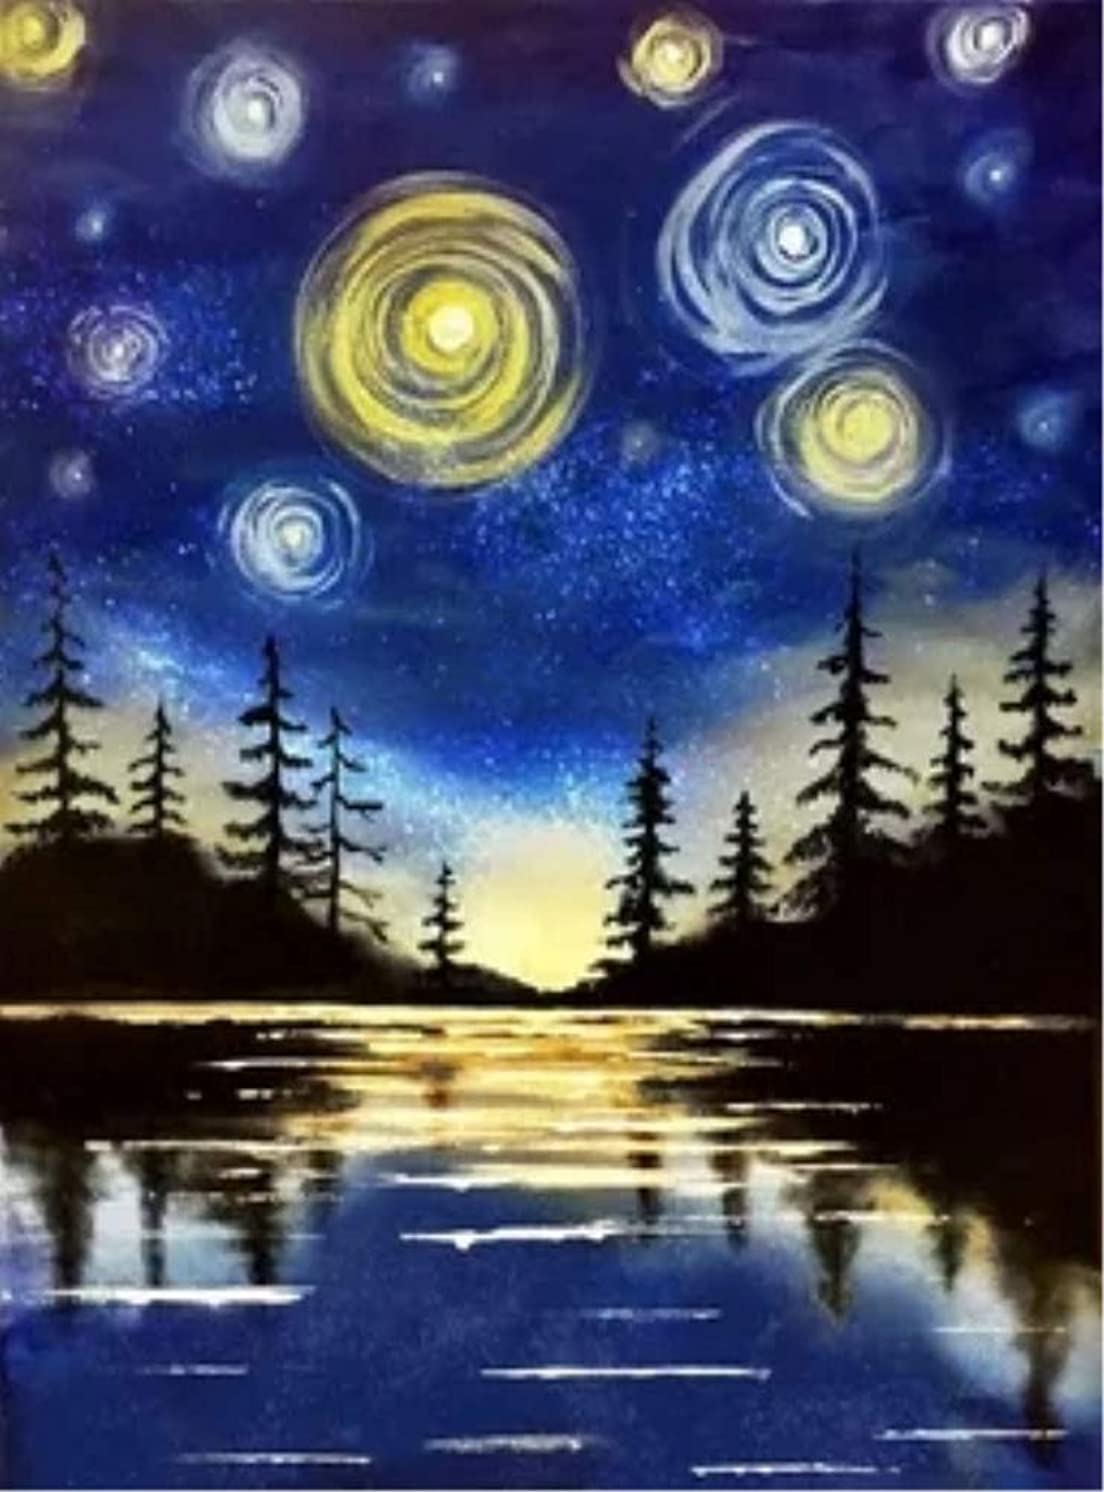 New 5D Diamond Painting Kits for Adults Kids, Awesocrafts Starry Sky Forest River Full Drill DIY Diamond Art Embroidery Paint by Numbers with Diamonds (Starry Sky1)